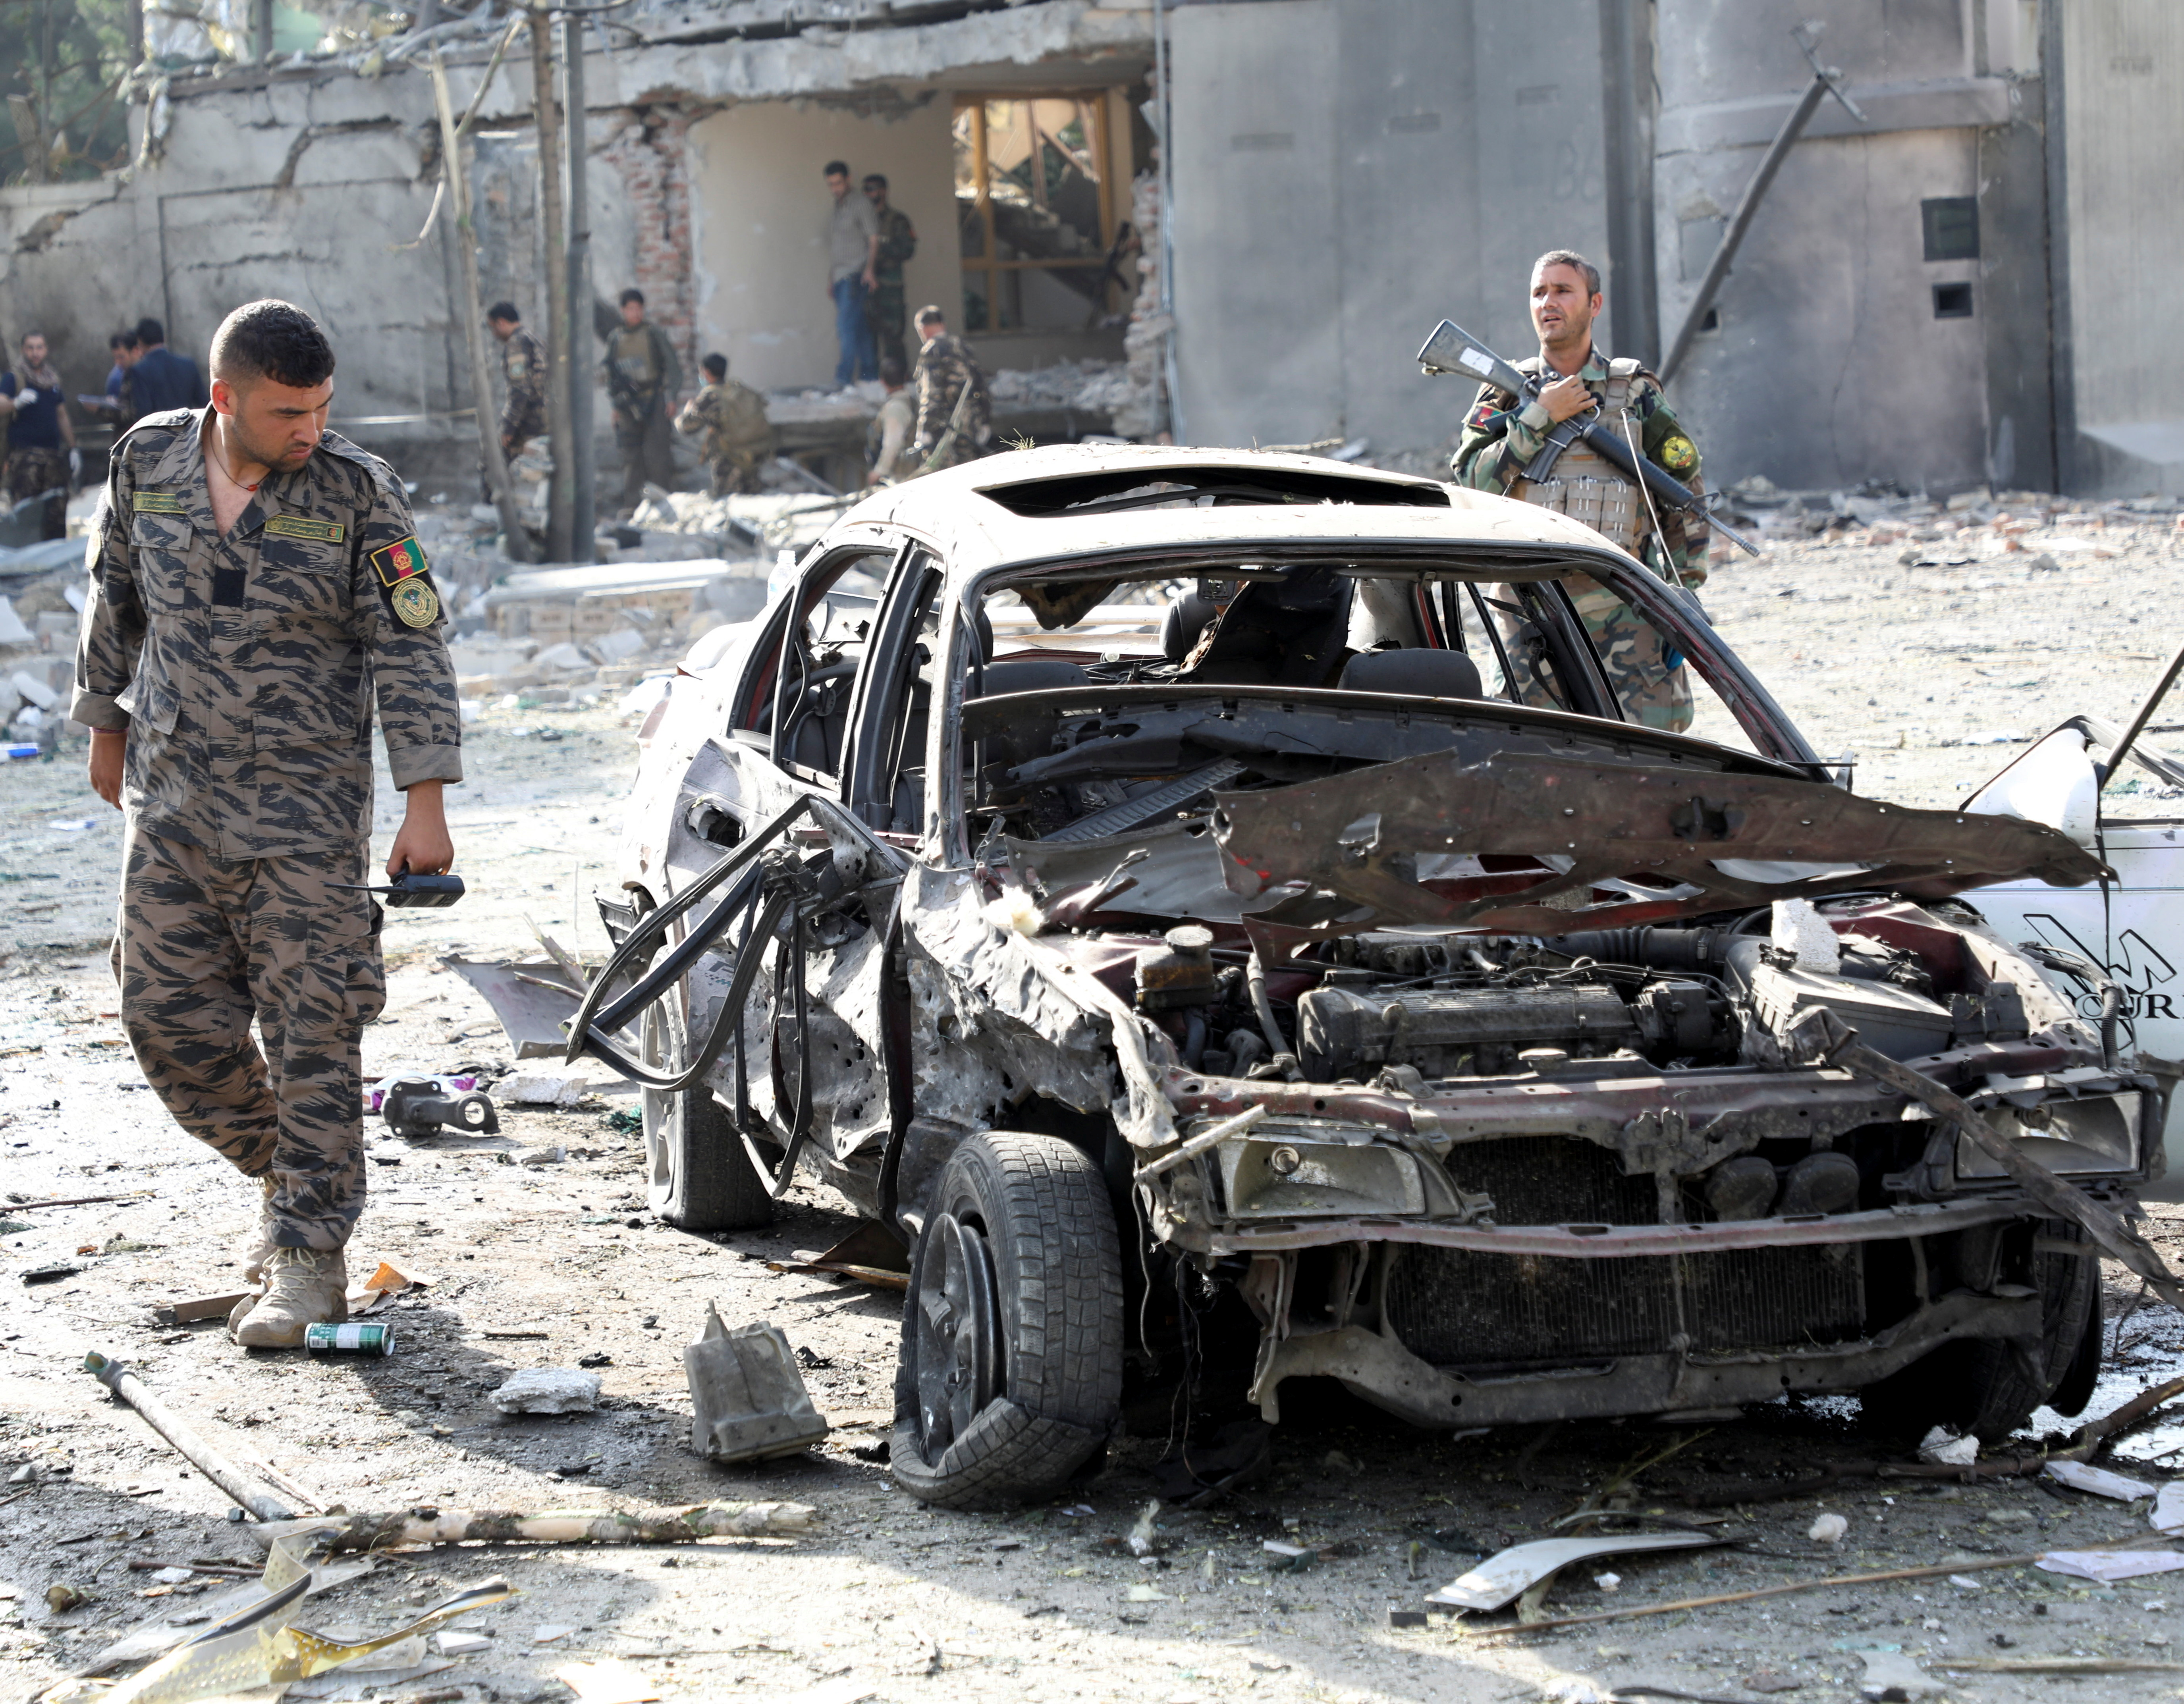 A member of Afghan security forces looks at a damaged car at the site of yesterday's night-time car bomb blast in Kabul, Afghanistan August 4, 2021.REUTERS/Stringer